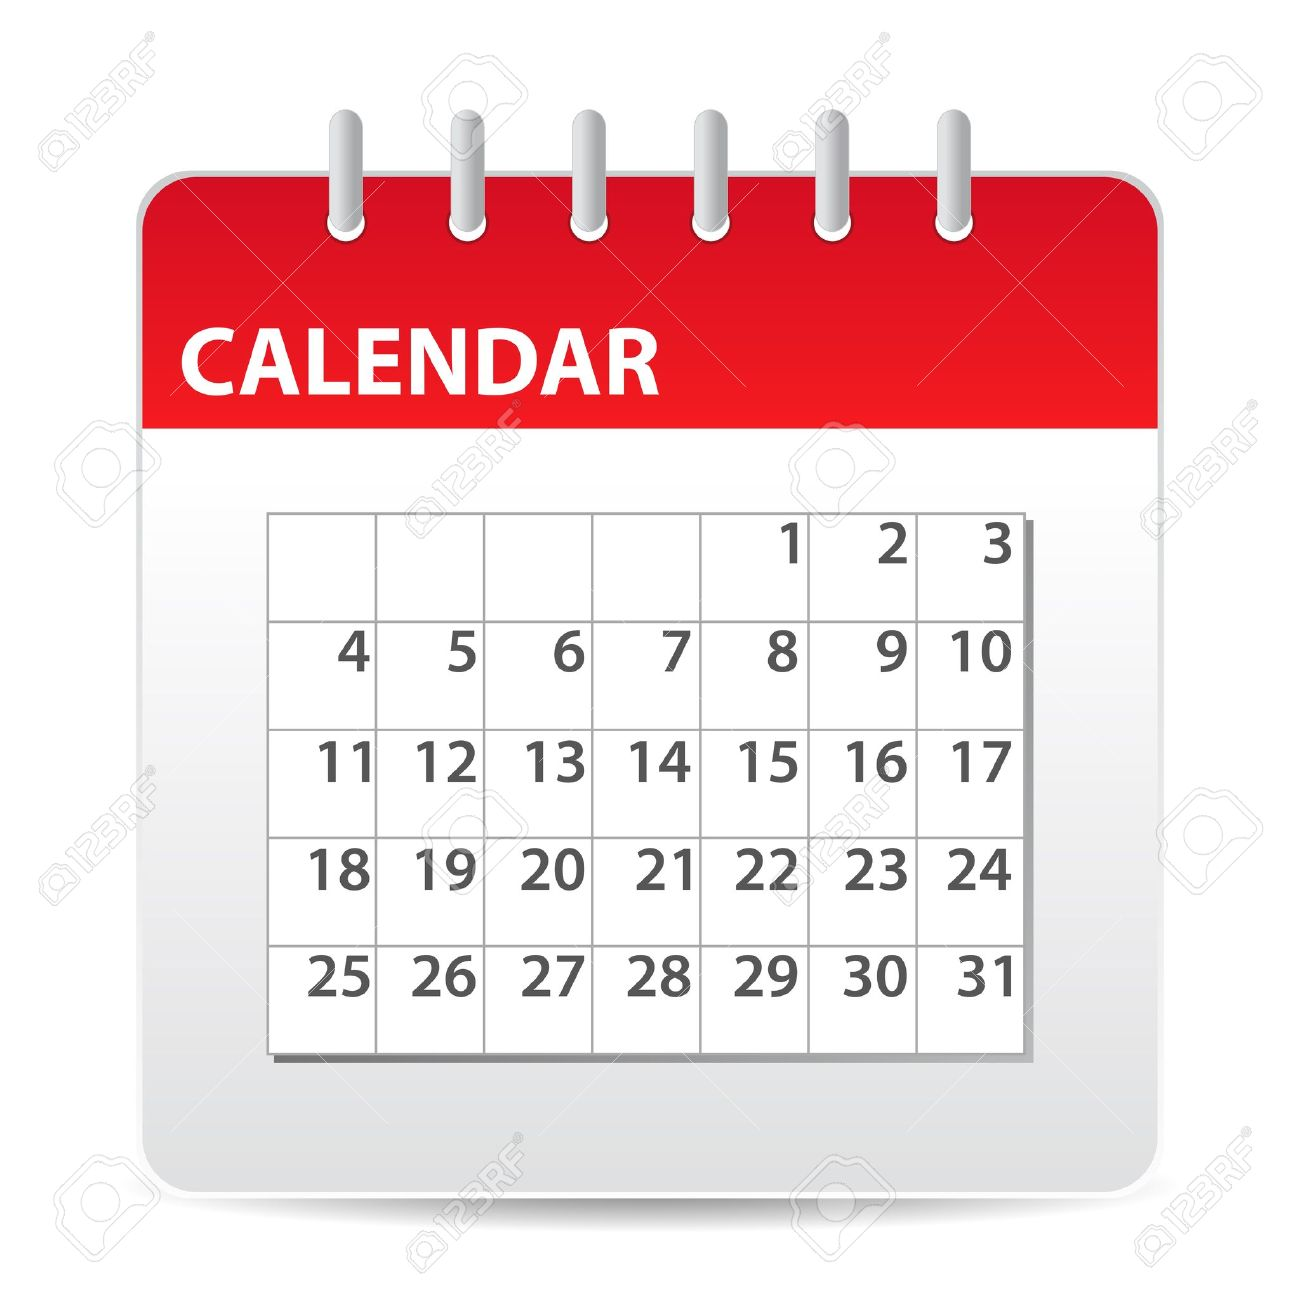 Calendar Events Event Red Calendar Icon With